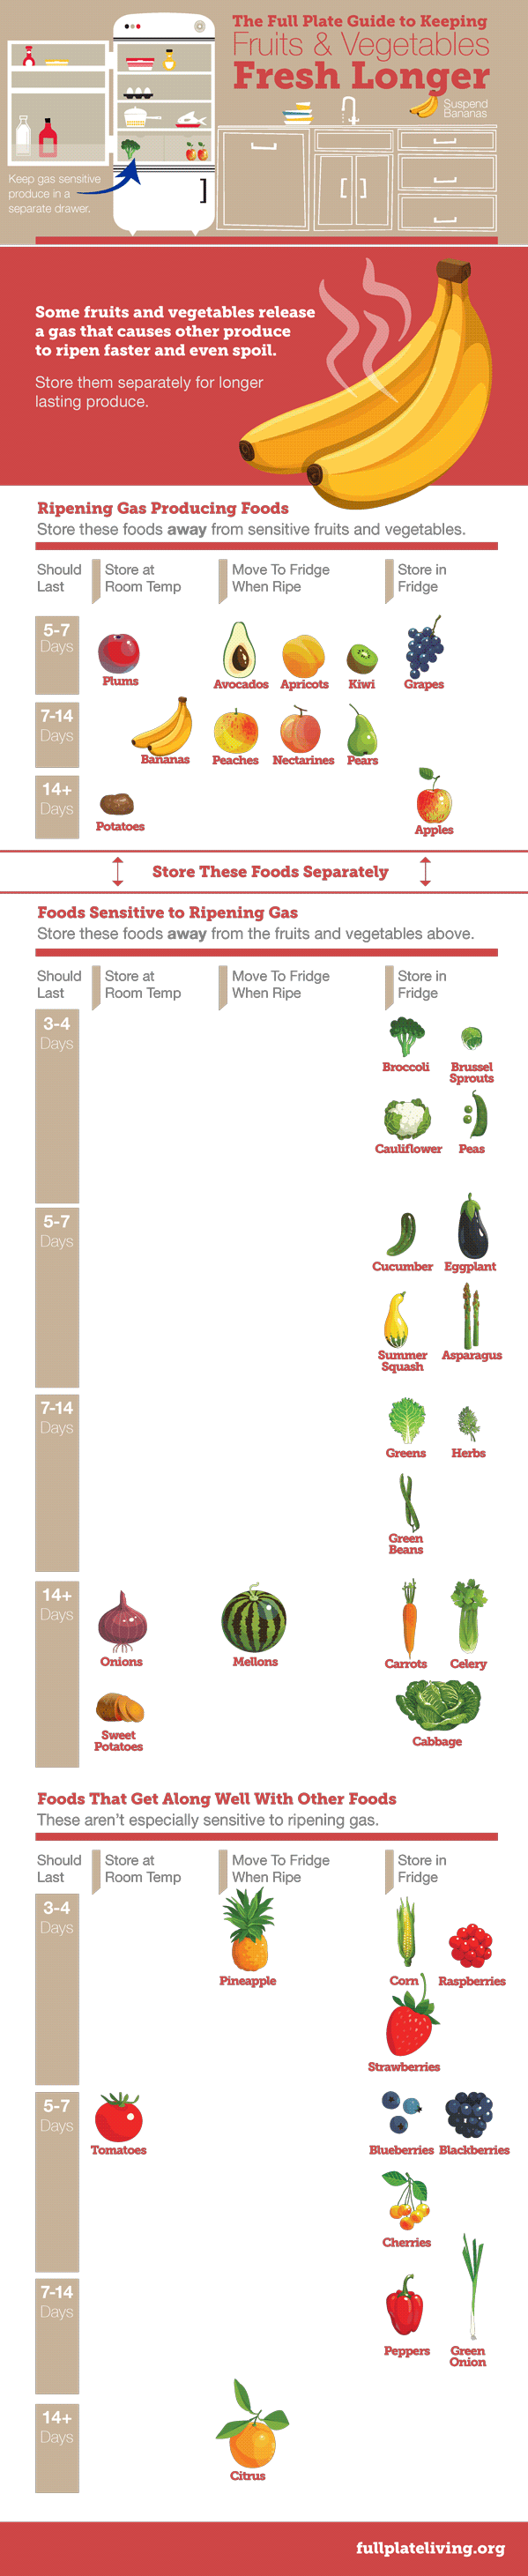 Full Plate Guide to Keeping Fruits and Vegetables Fresh Longer - Keep Your Produce Fresh - Sign up for more fresh produce ideas like this at